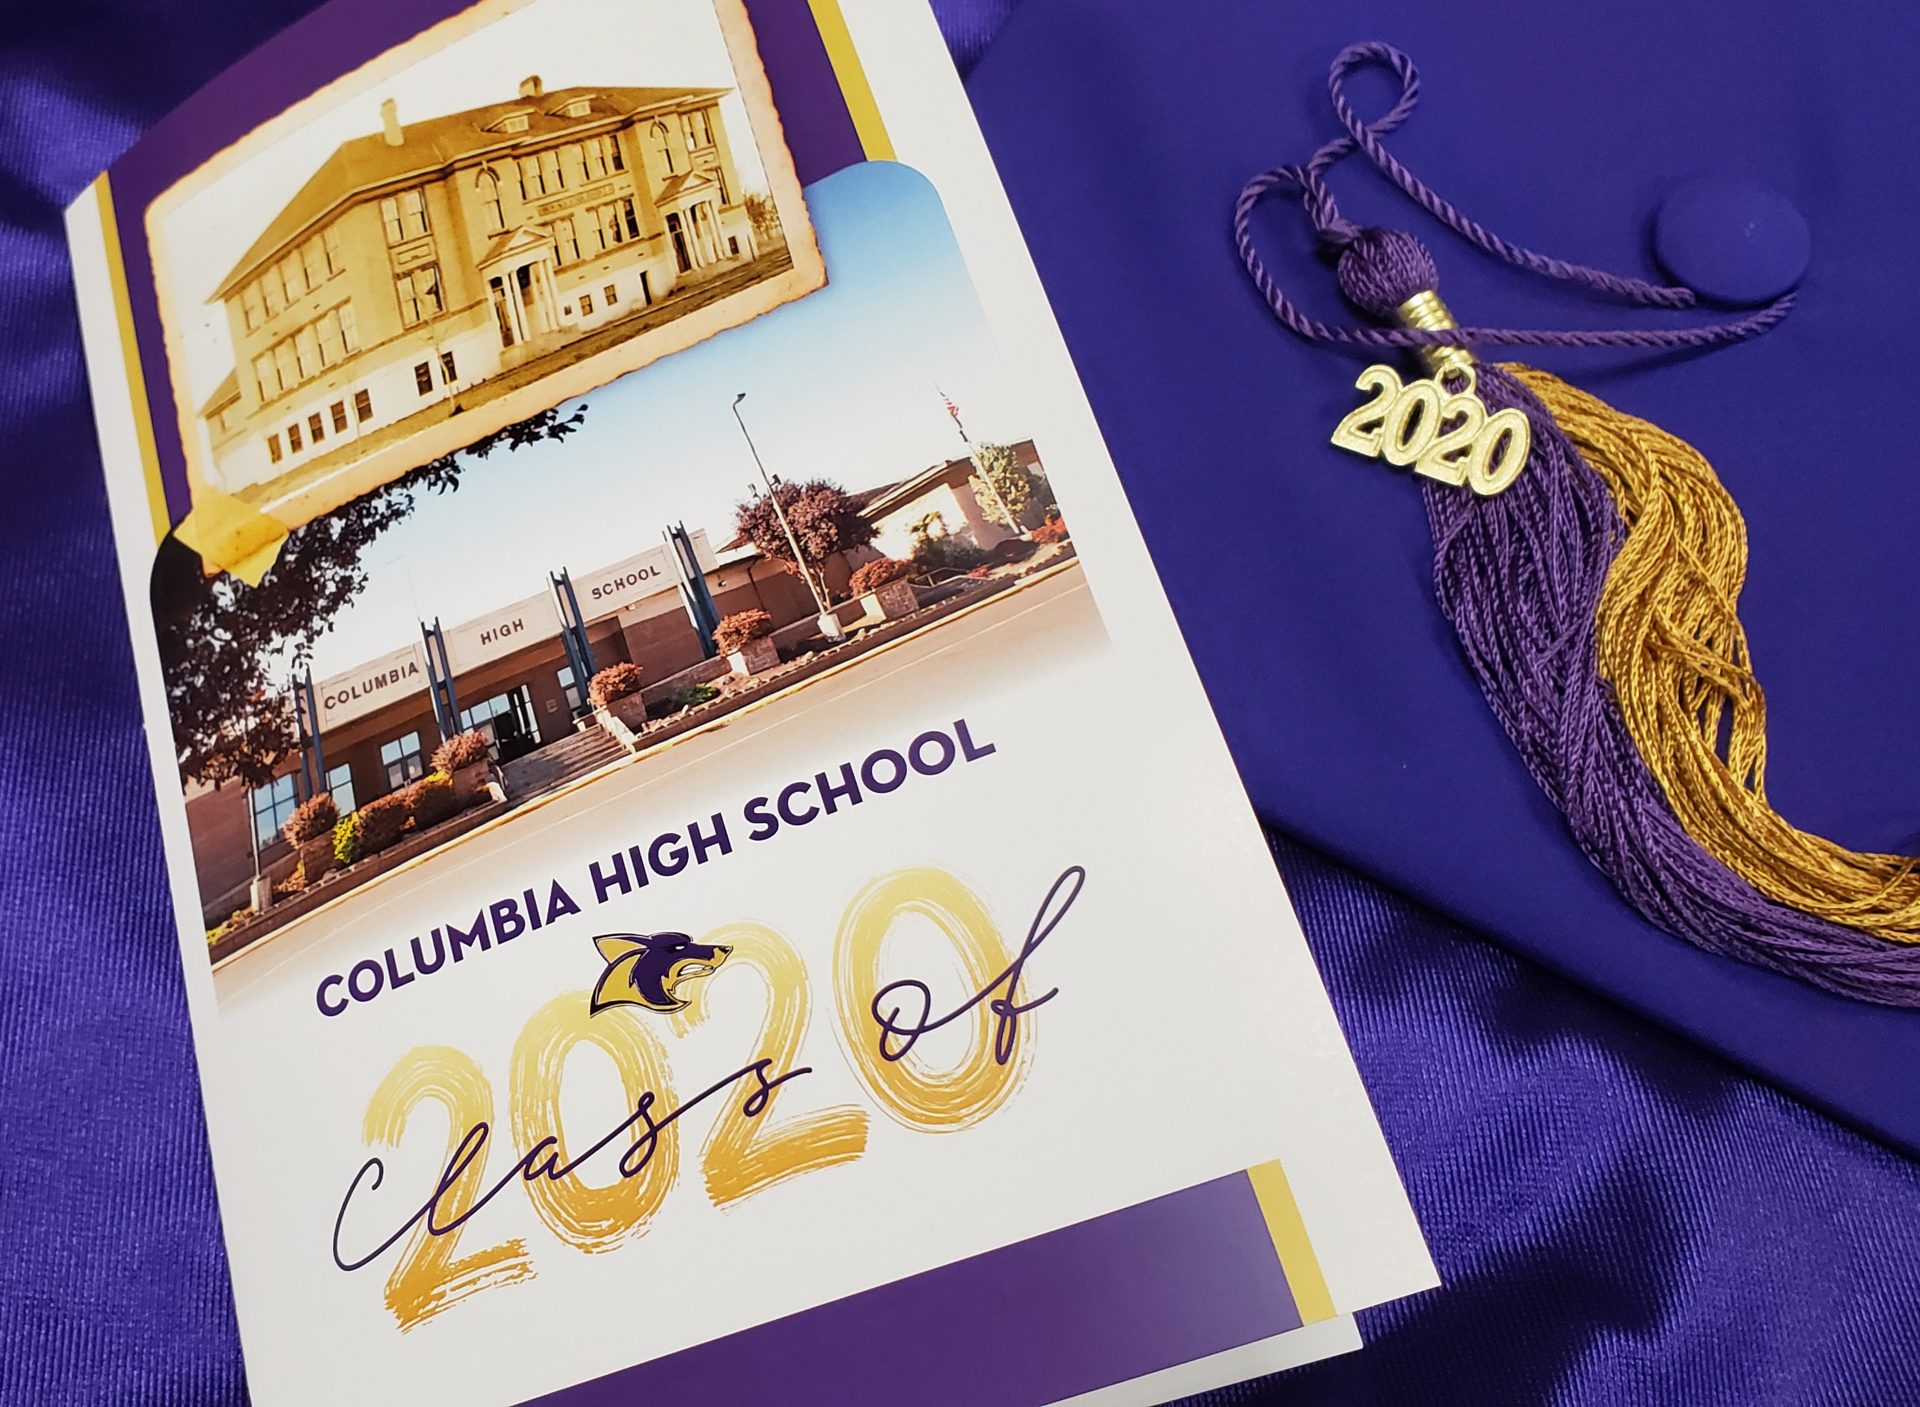 CHS Graduation Cap and Tassel and Program